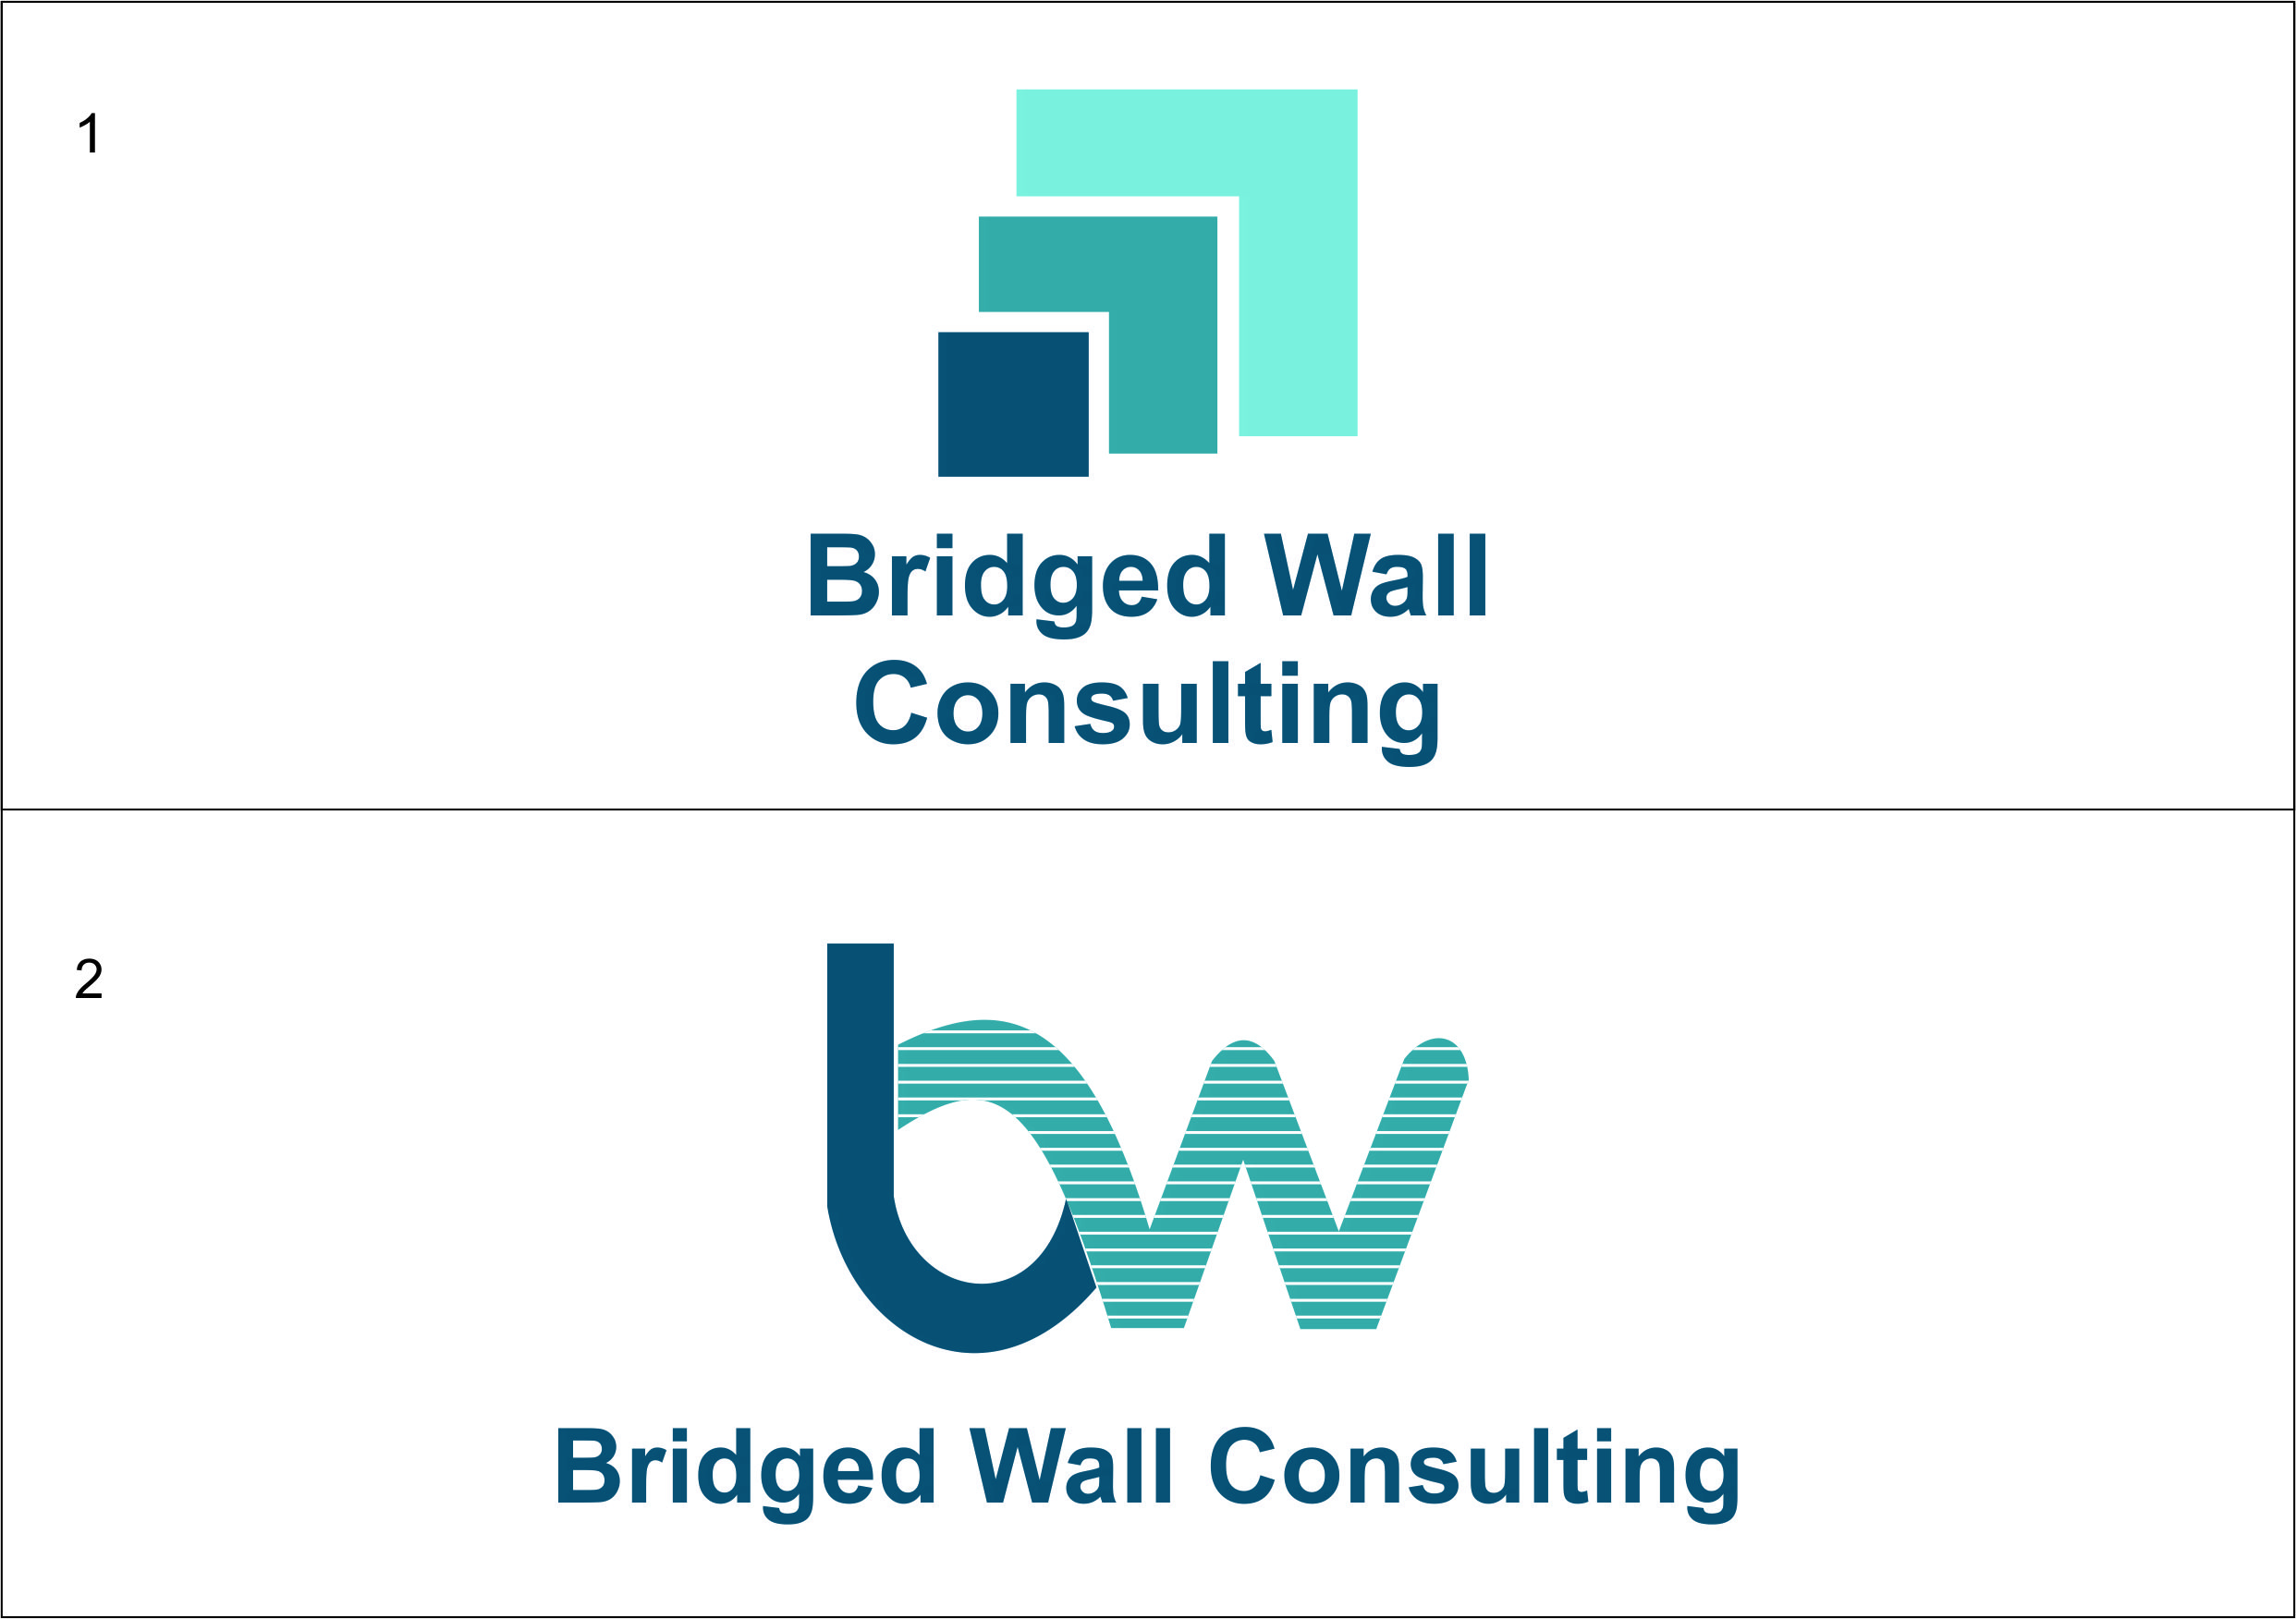 BridgedWall Consulting